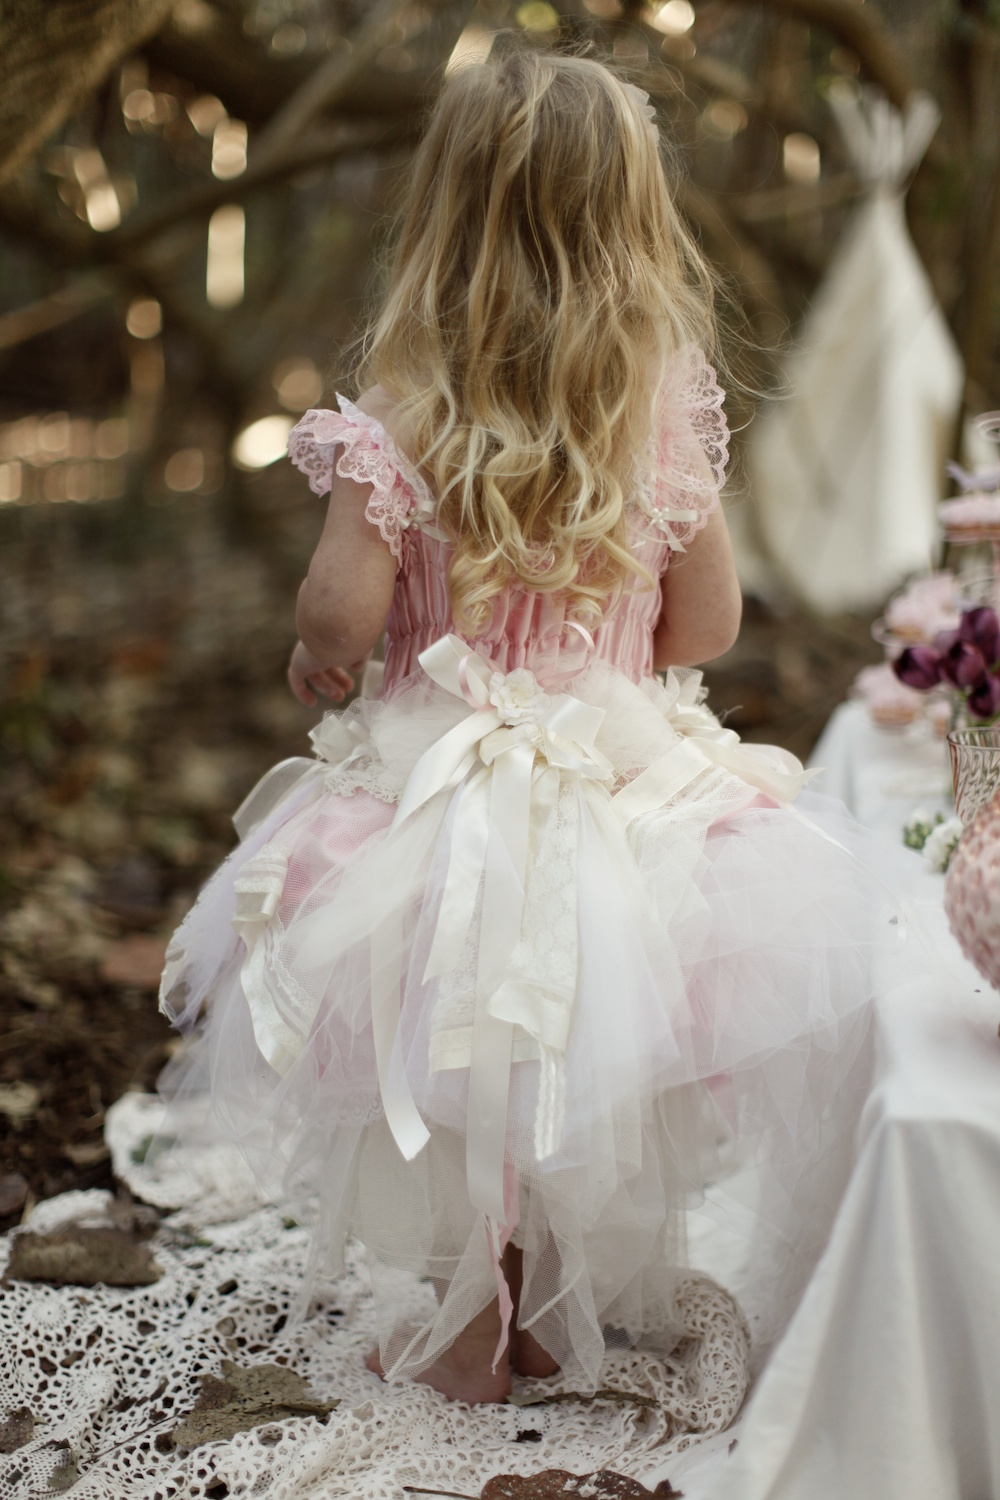 couture-flowergirl-dresses-vicky-lee-mylo-9